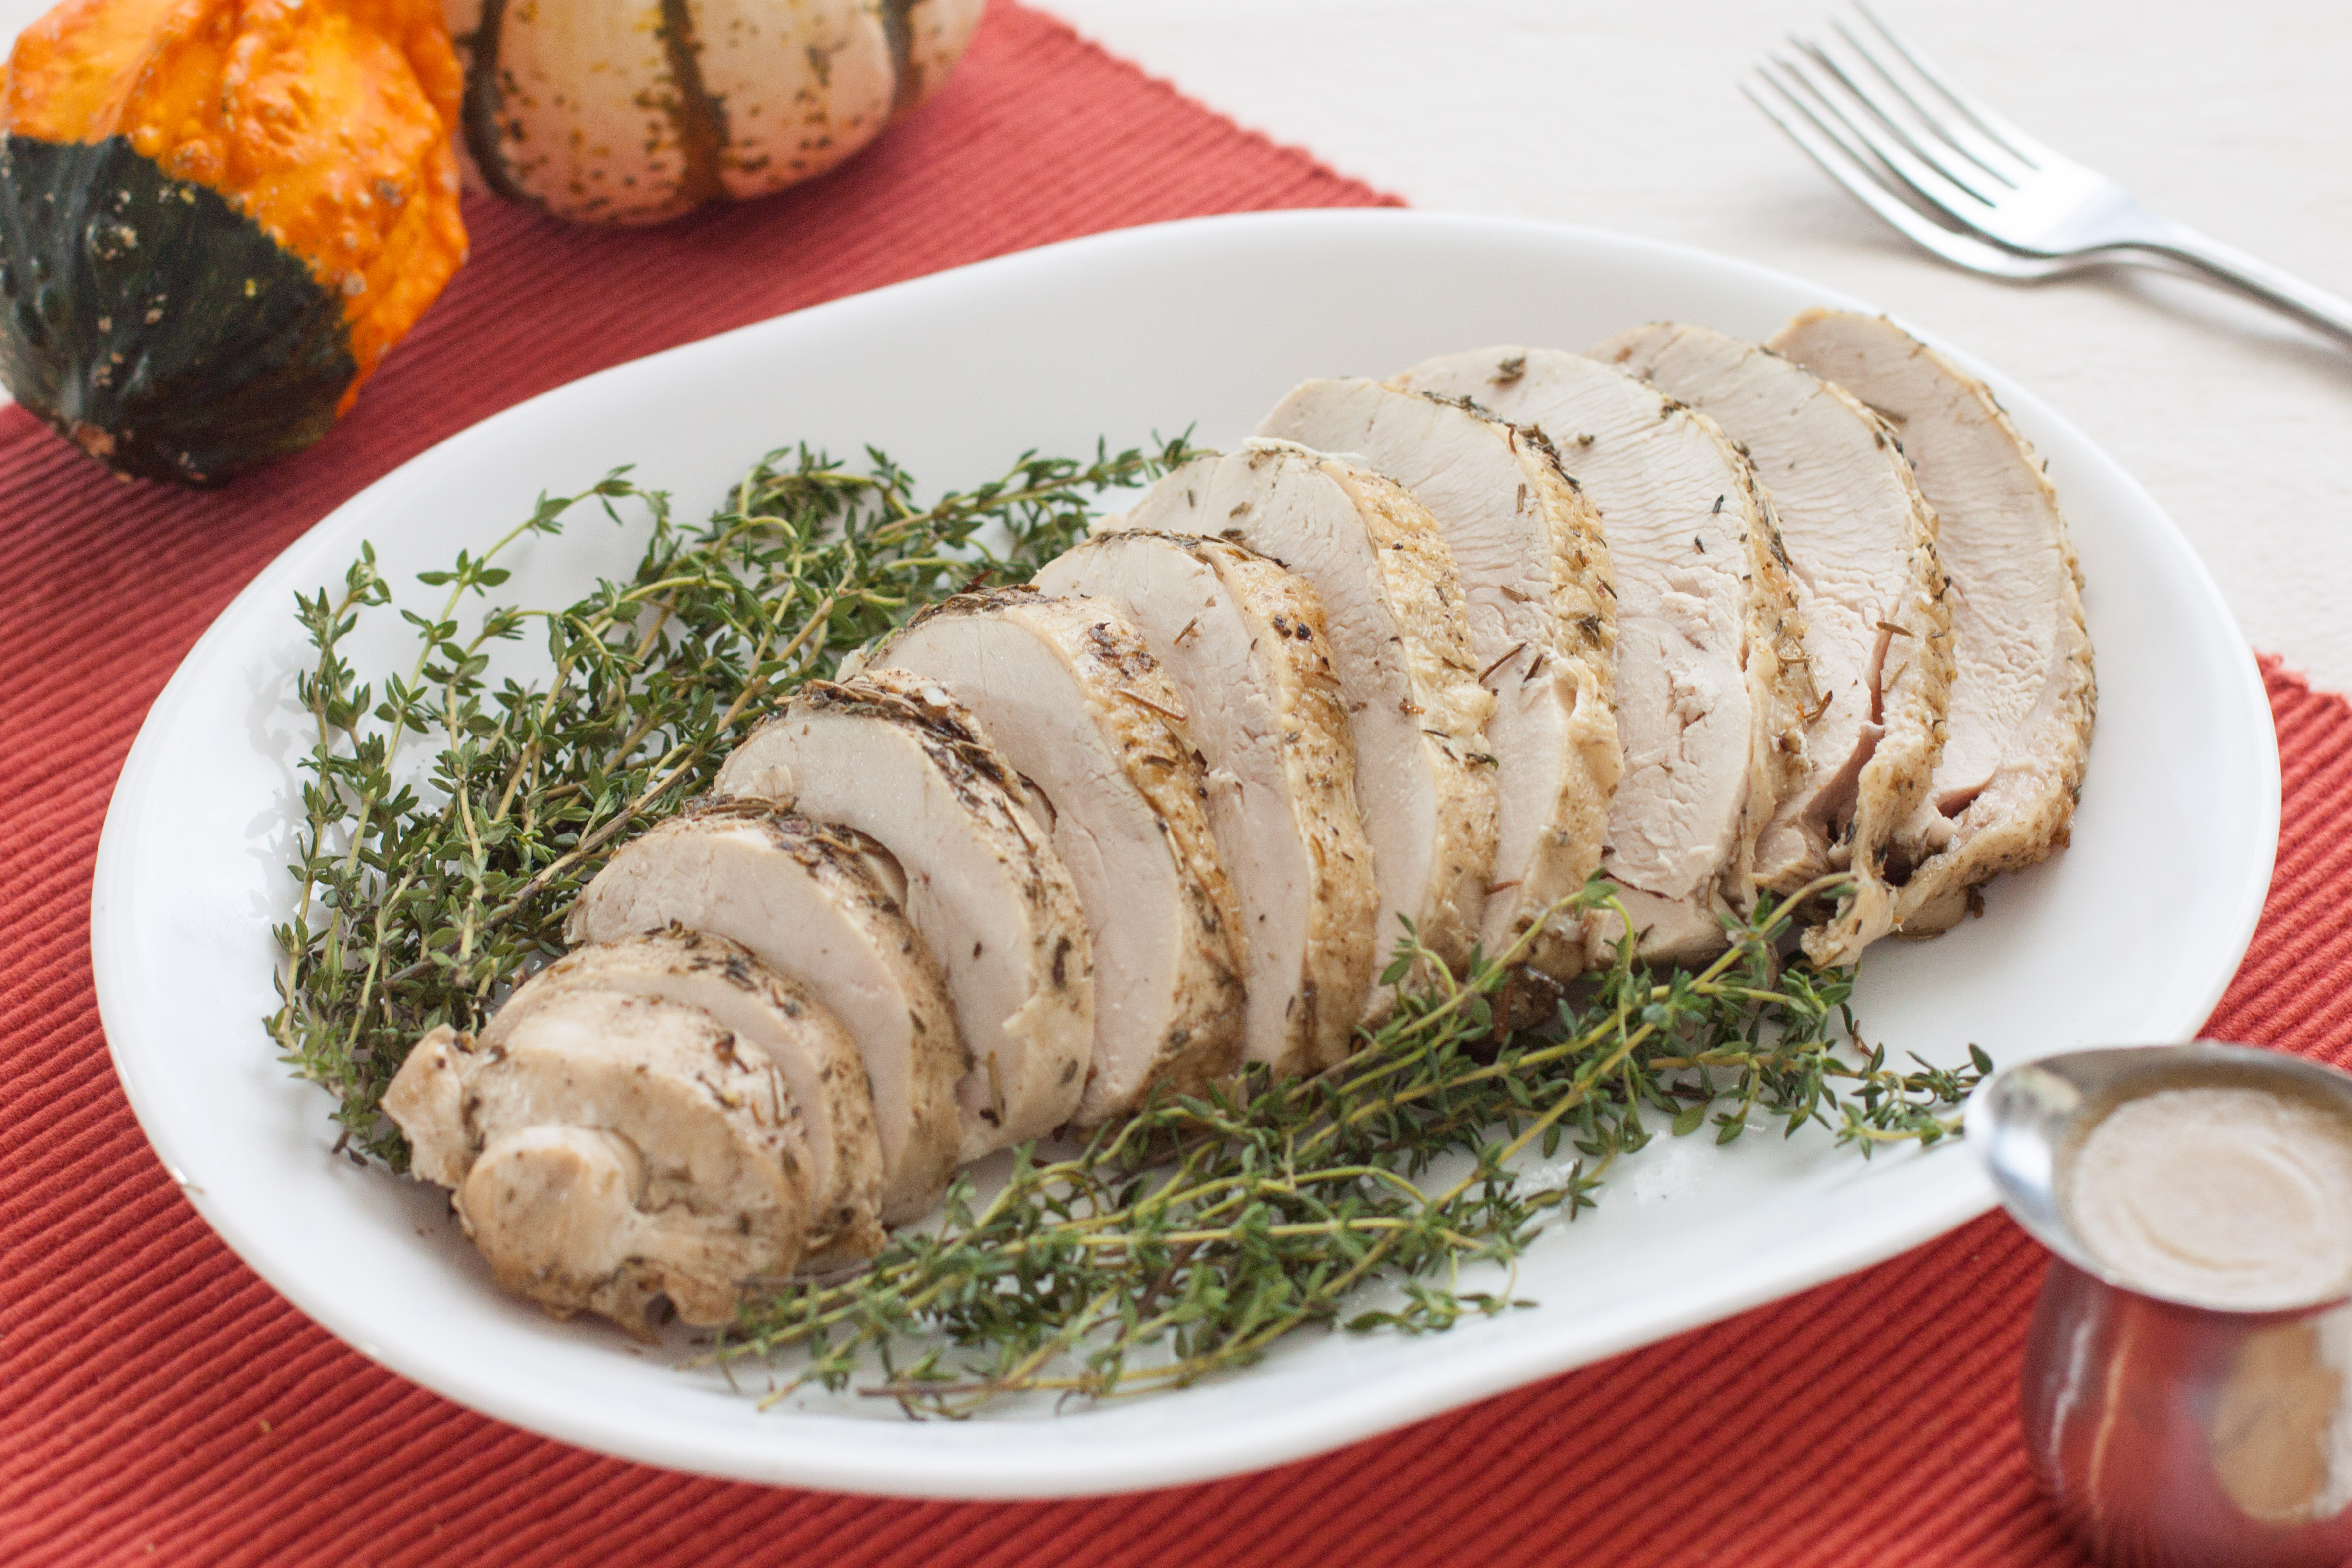 roast turkey breast slices on a plate with garnish